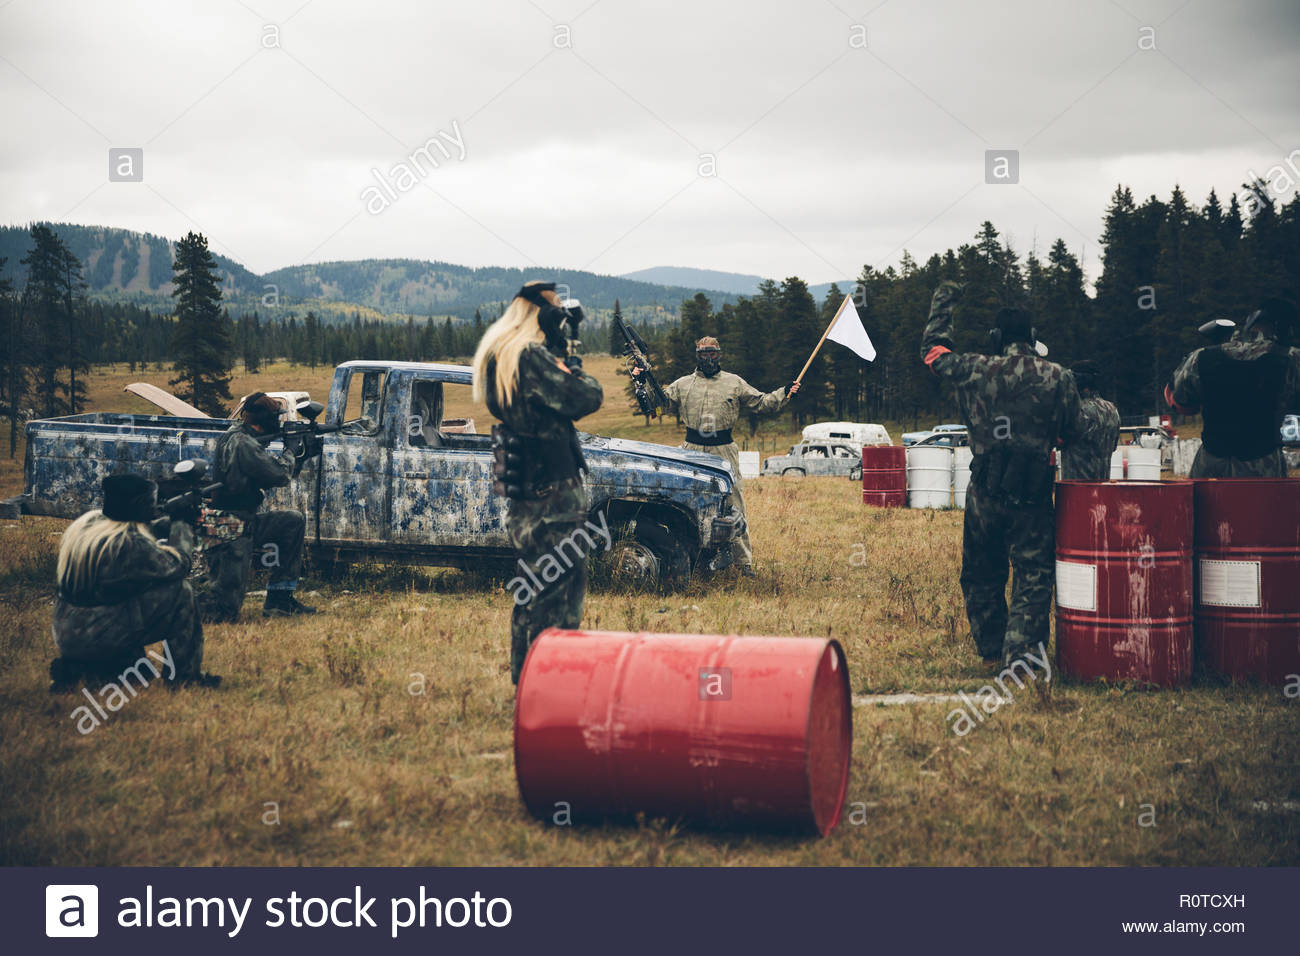 Man waving white flag at paintballing team in field - Stock Image